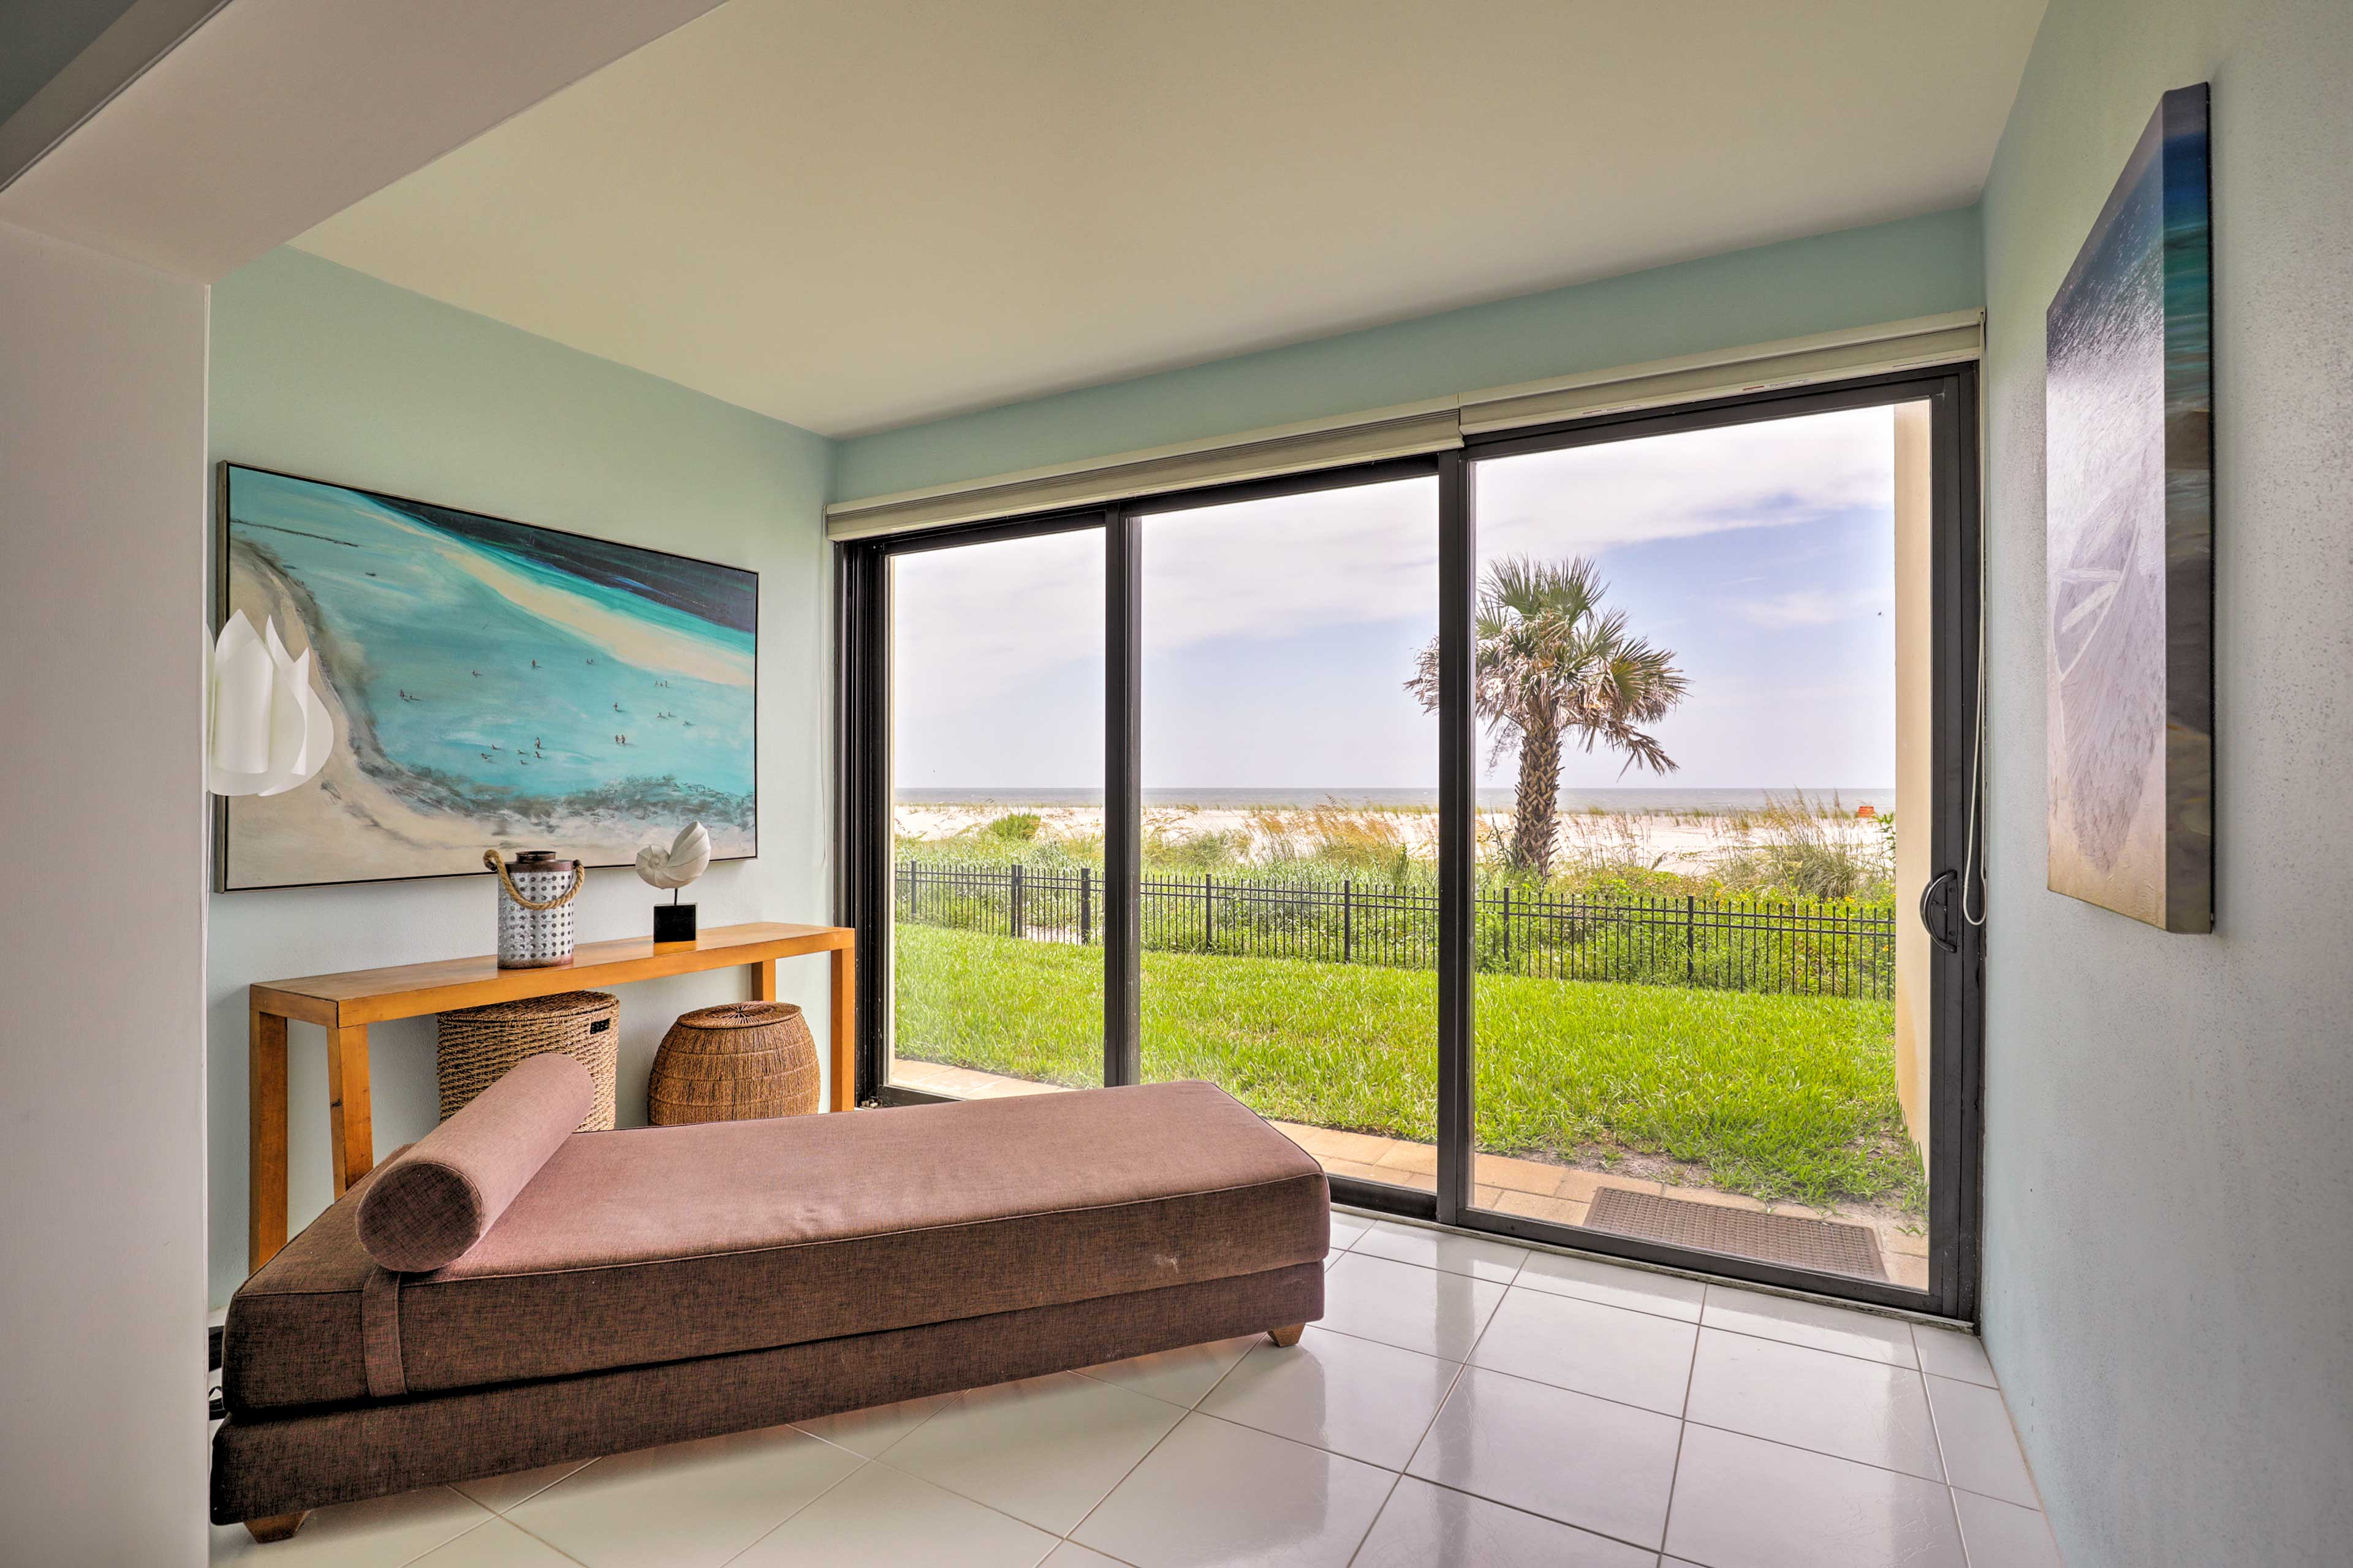 Explore the shore from this oceanfront Jacksonville Beach vacation rental condo.